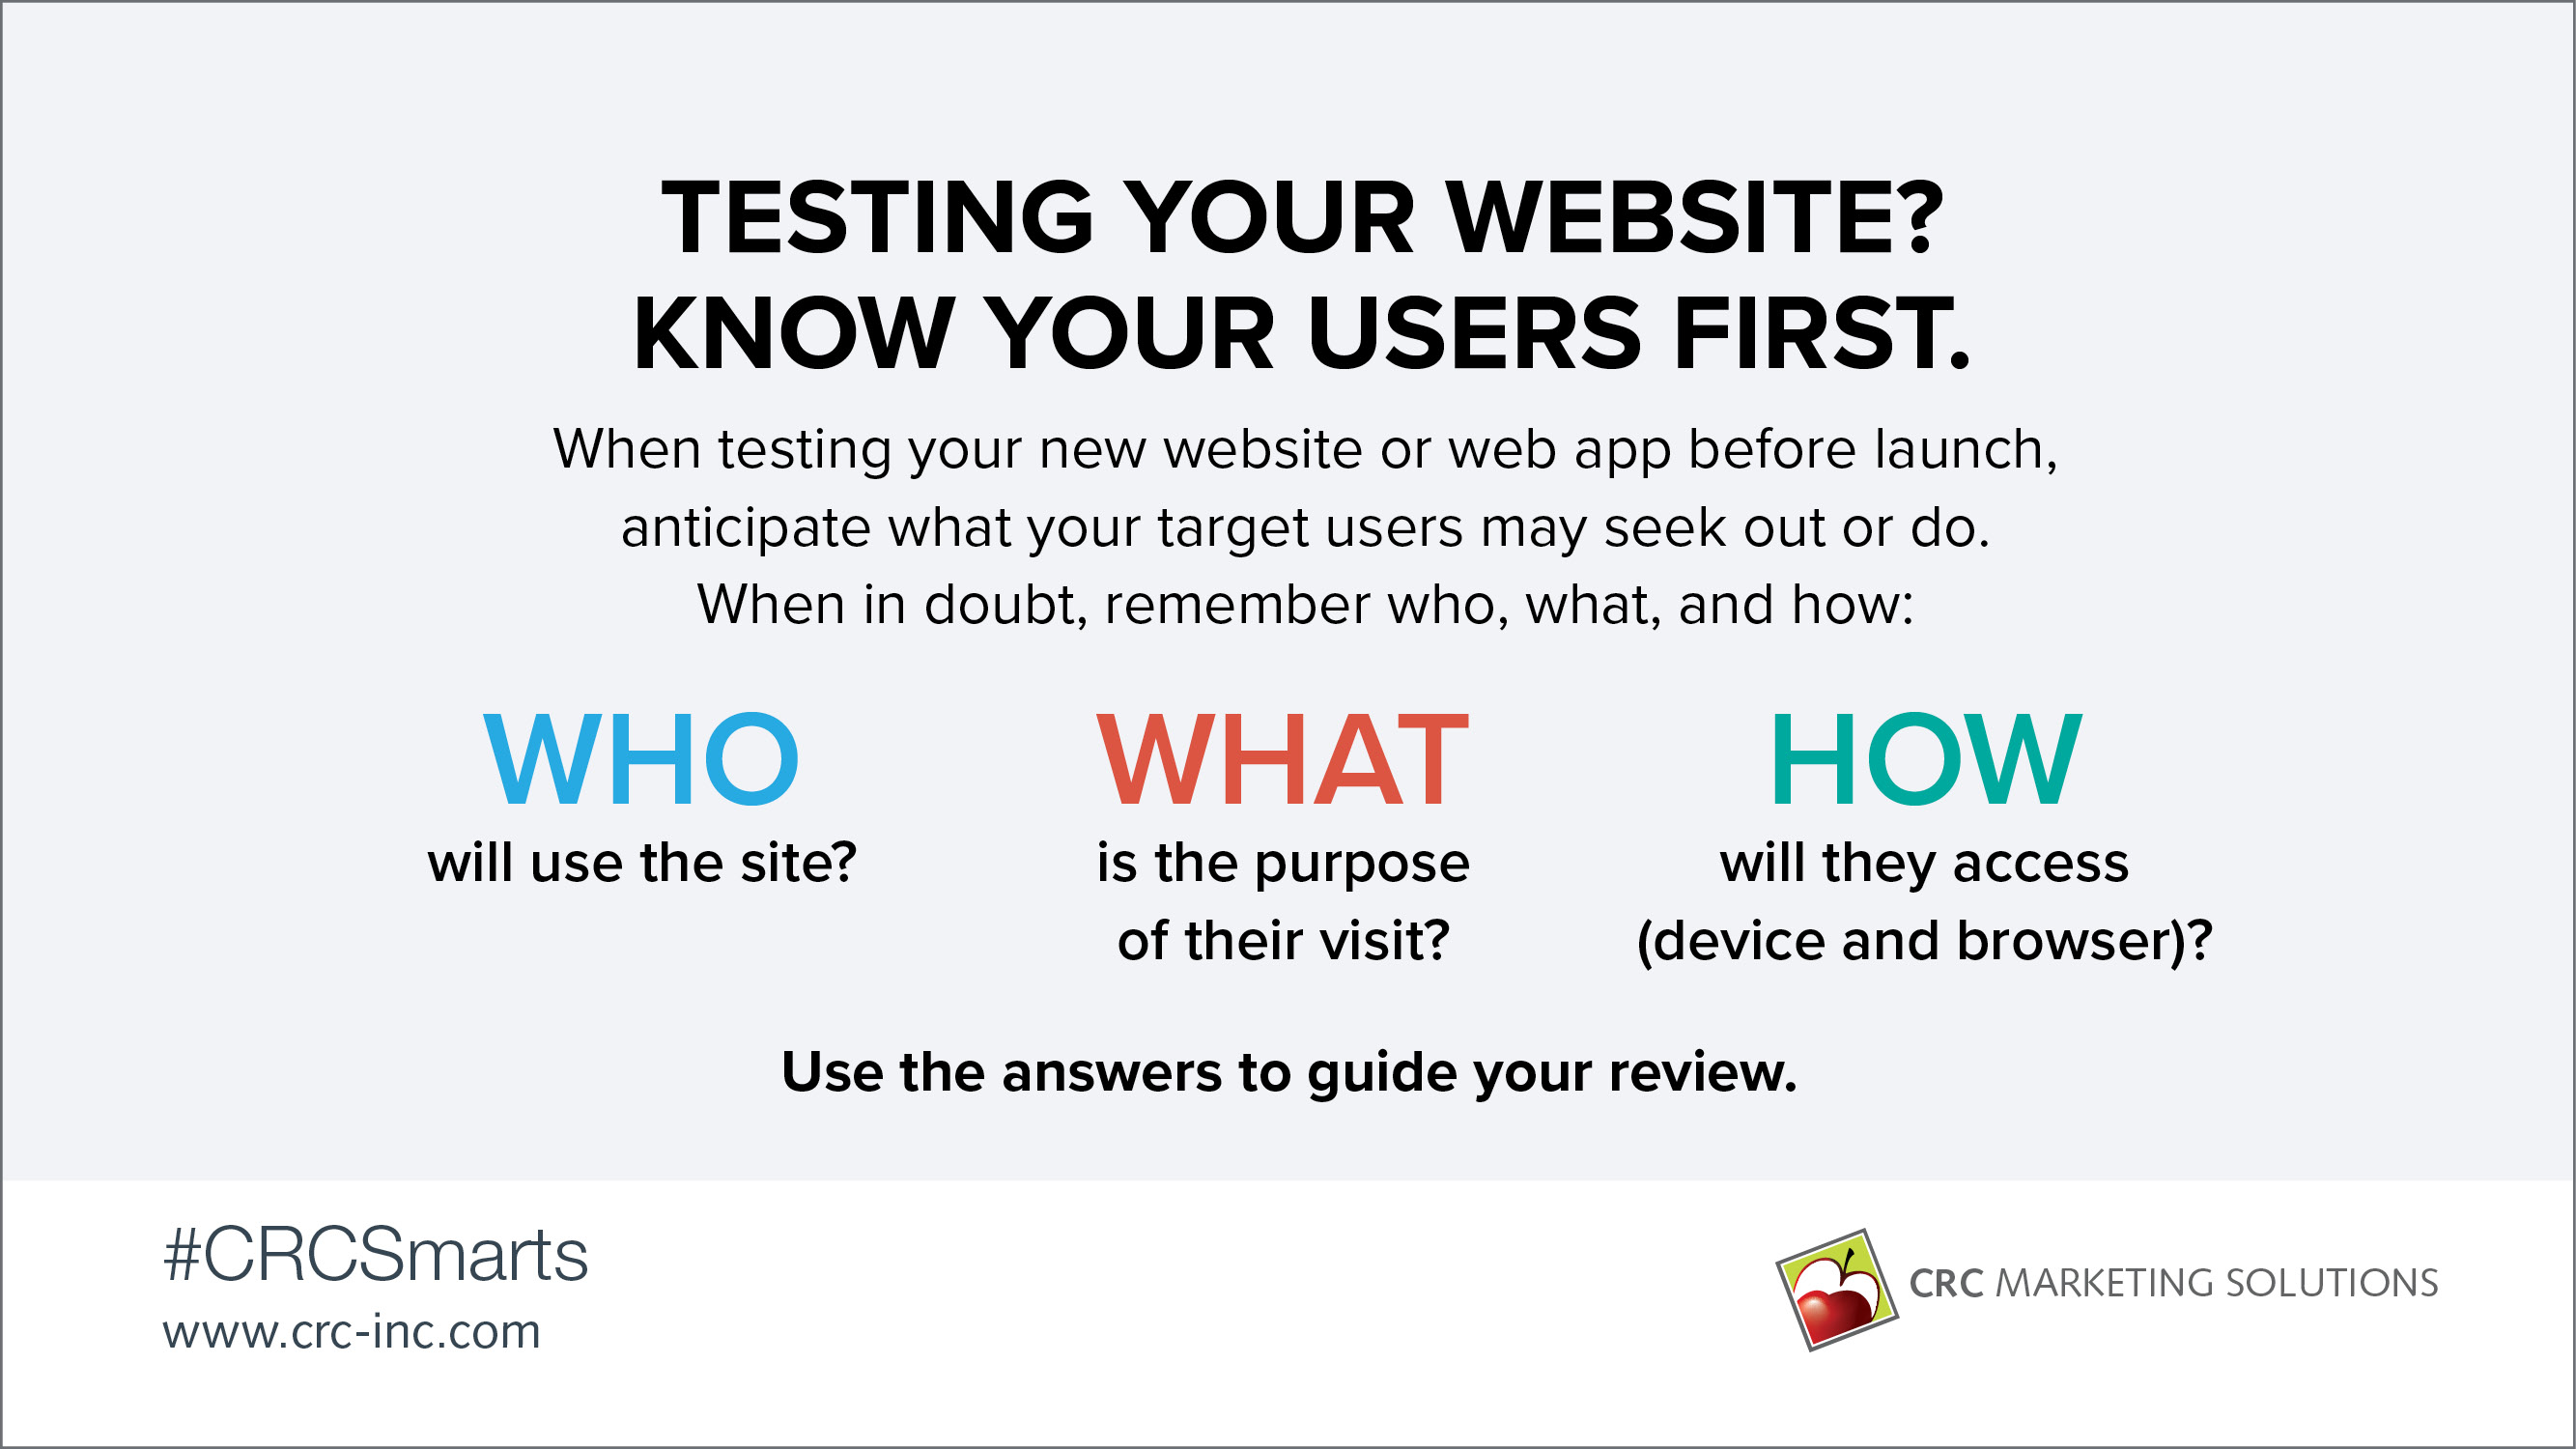 Testing your website? Know your users first